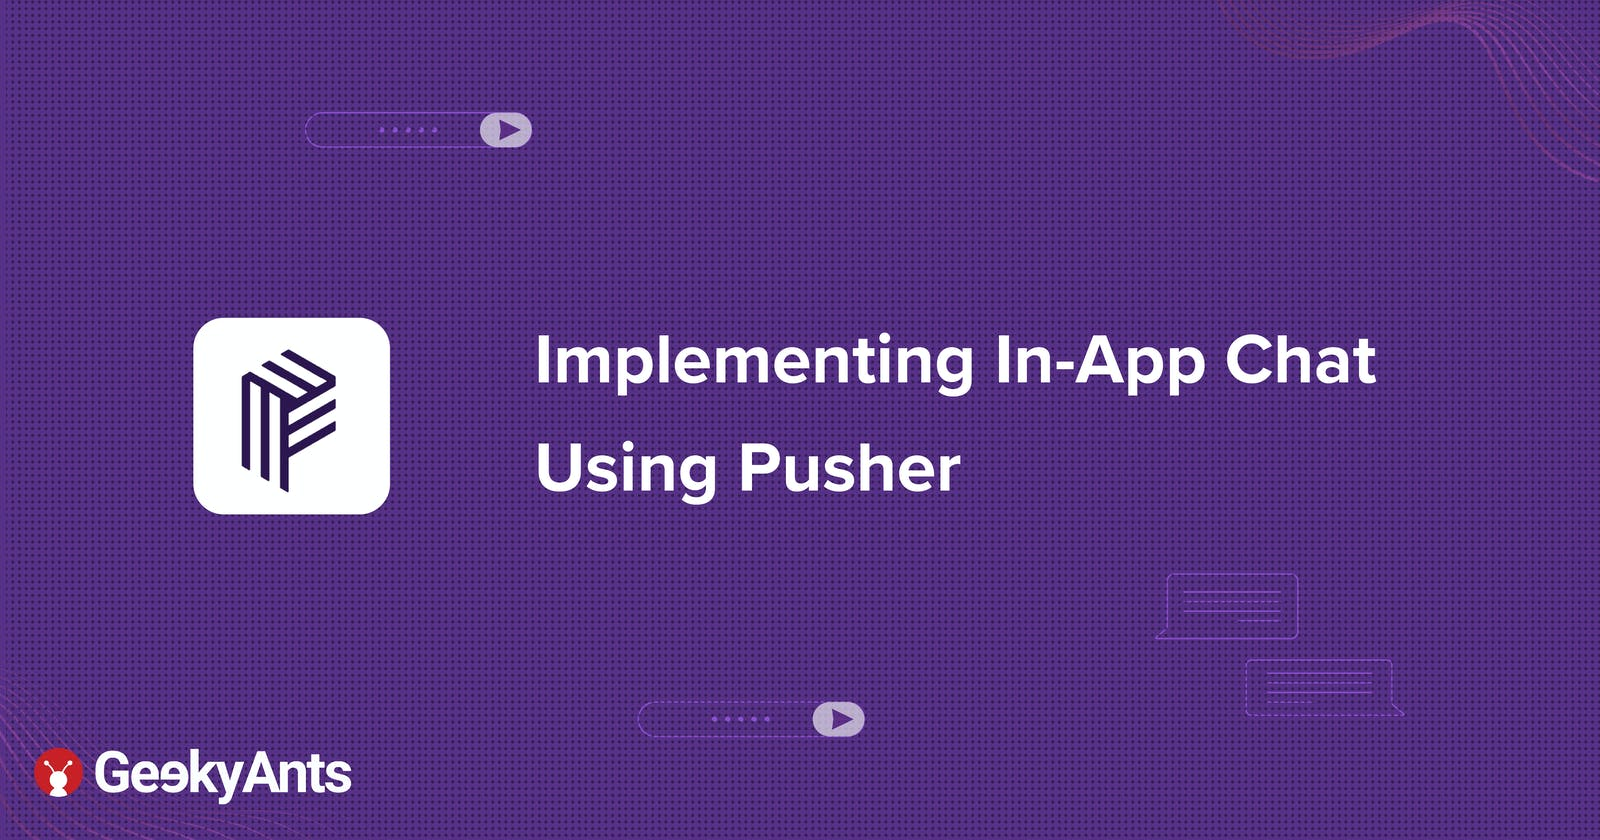 Implementing In-App Chat Using Pusher